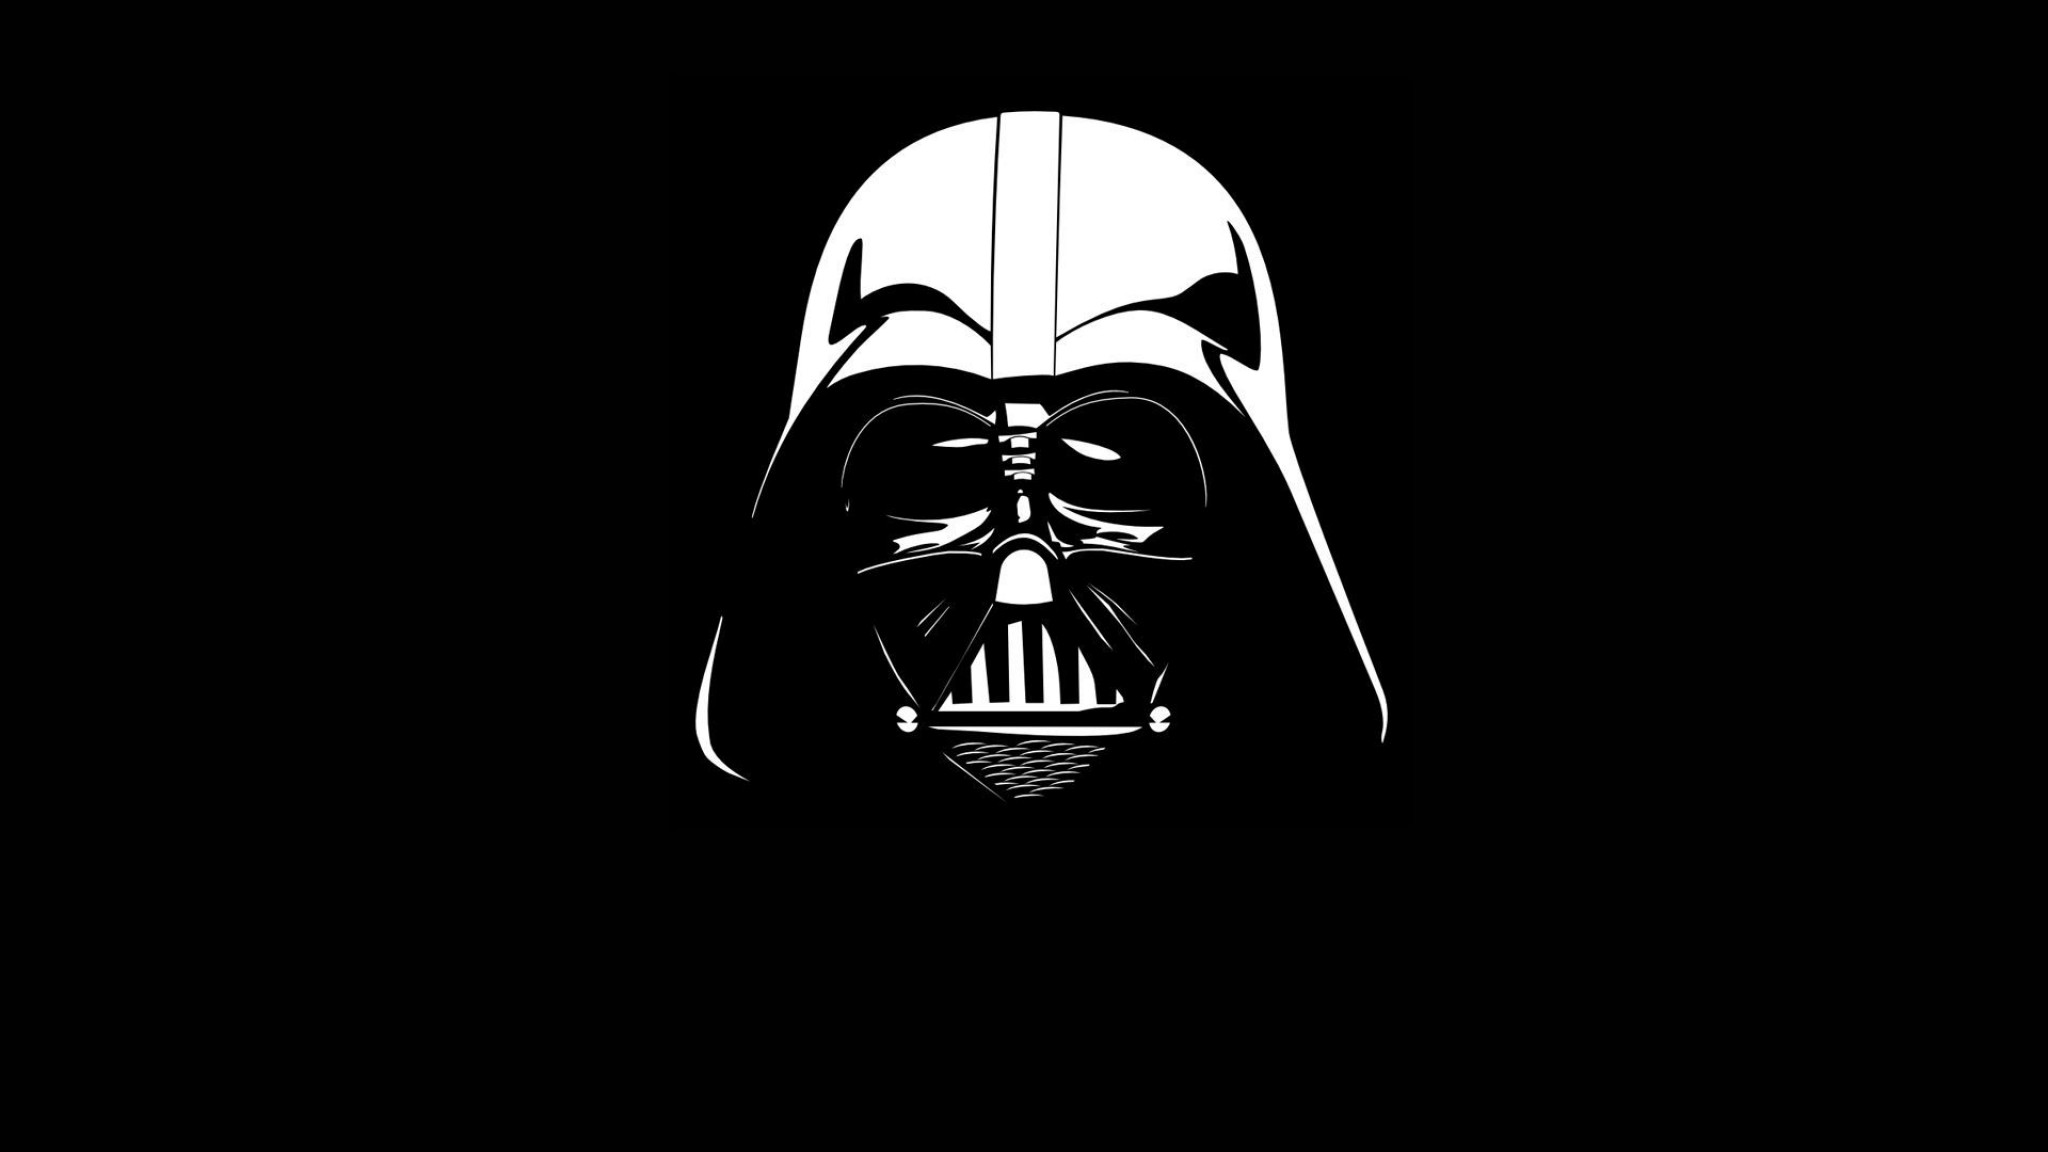 Darth Vader helmet  black  white  star wars   HD  HD Wallpaper